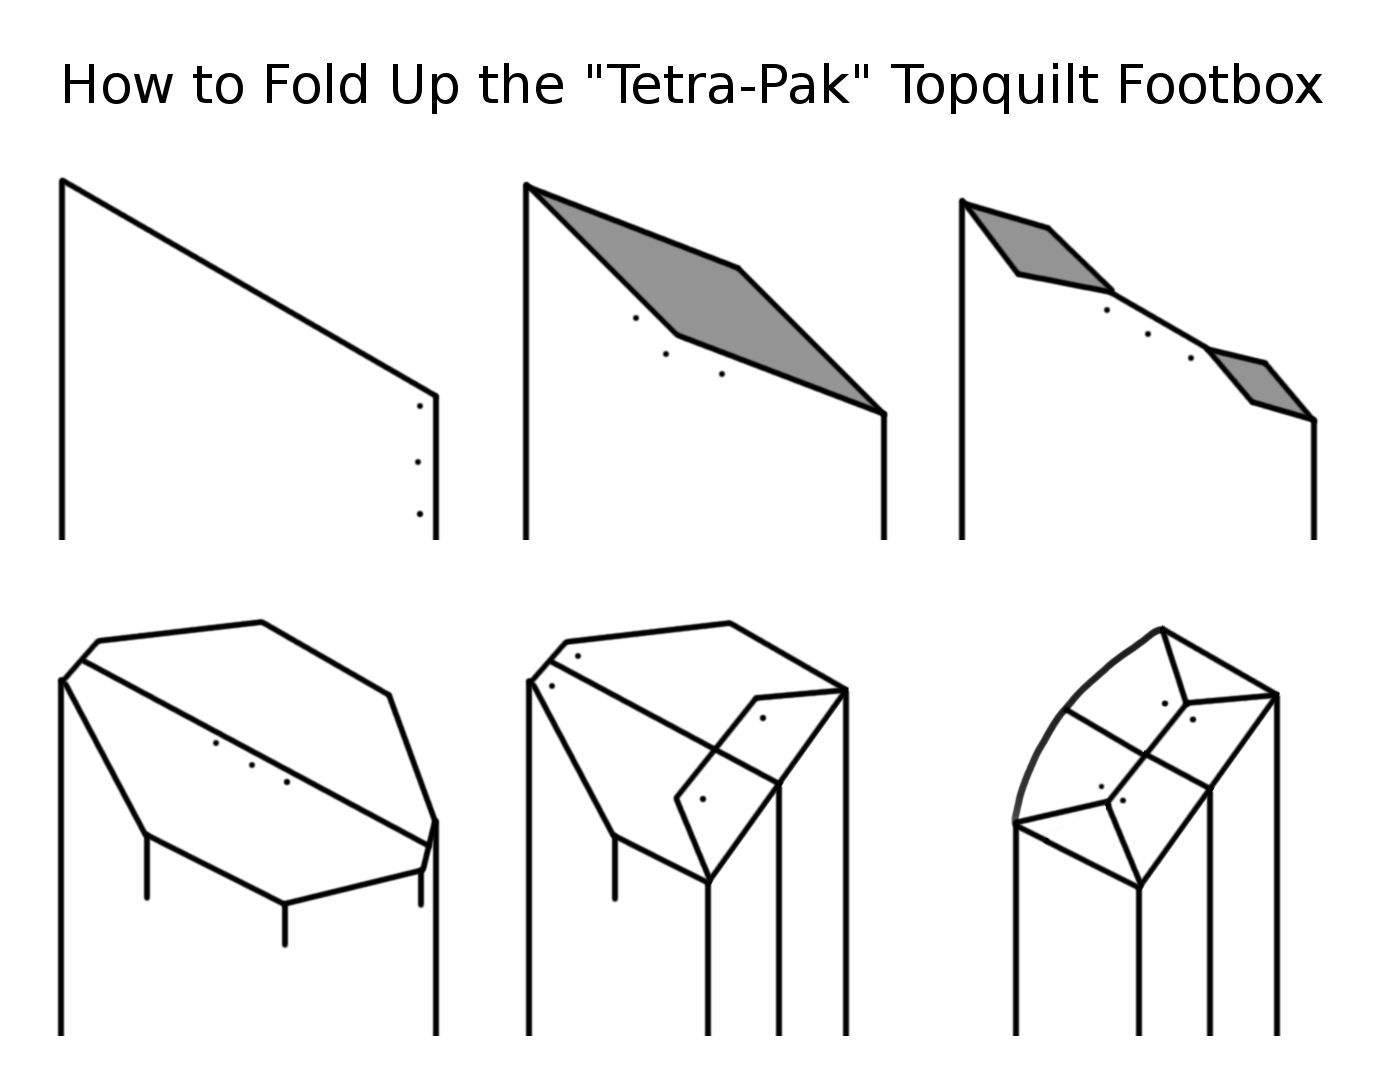 The footbox on the GEMINI version 2.0 topquilt folds up like a Tetra-Pak box.